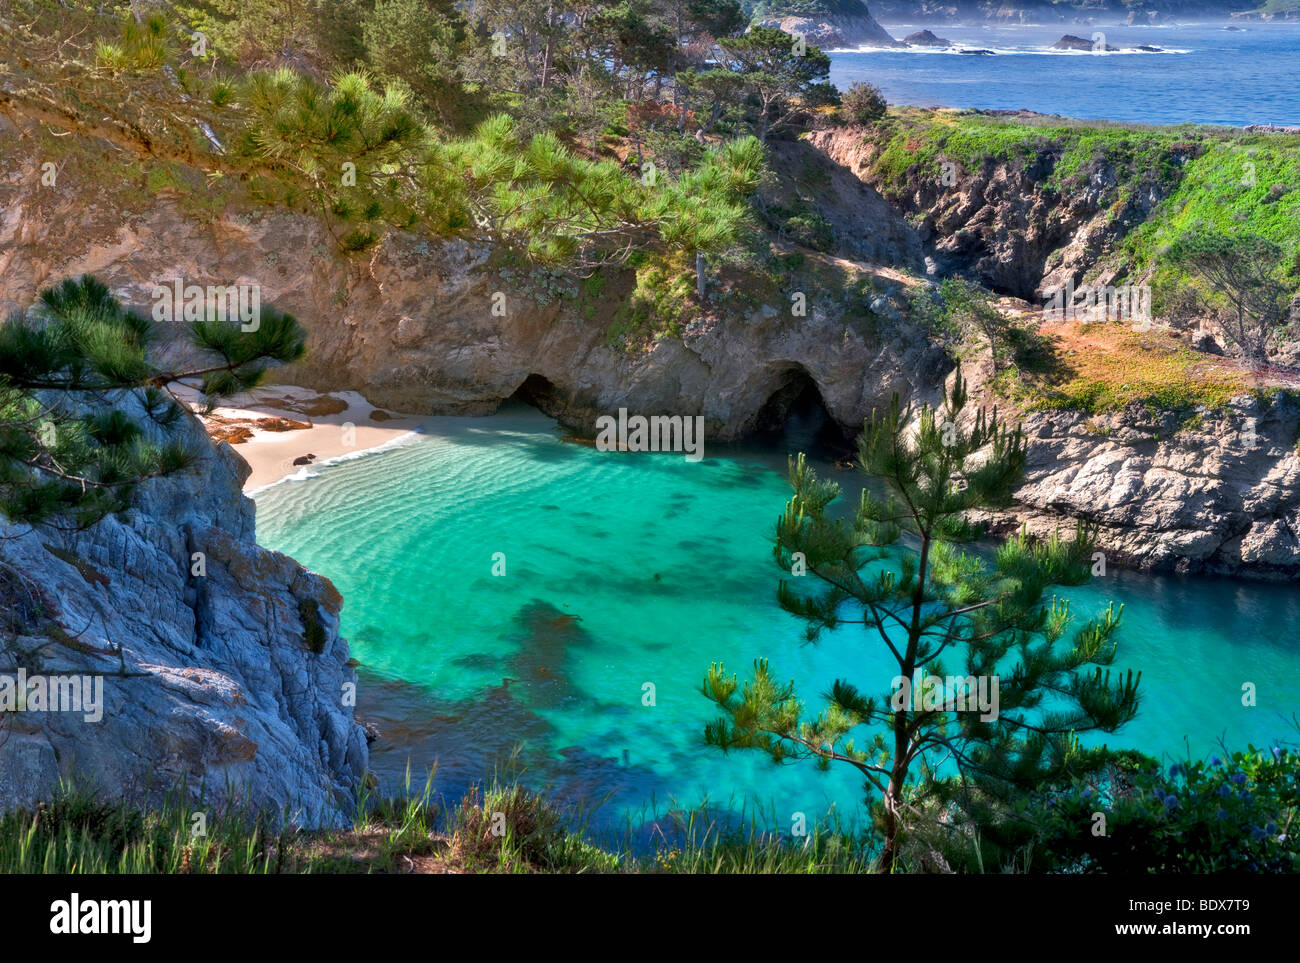 China beach with California Harbor Seals on beach. Point Lobos State Reserve, California - Stock Image